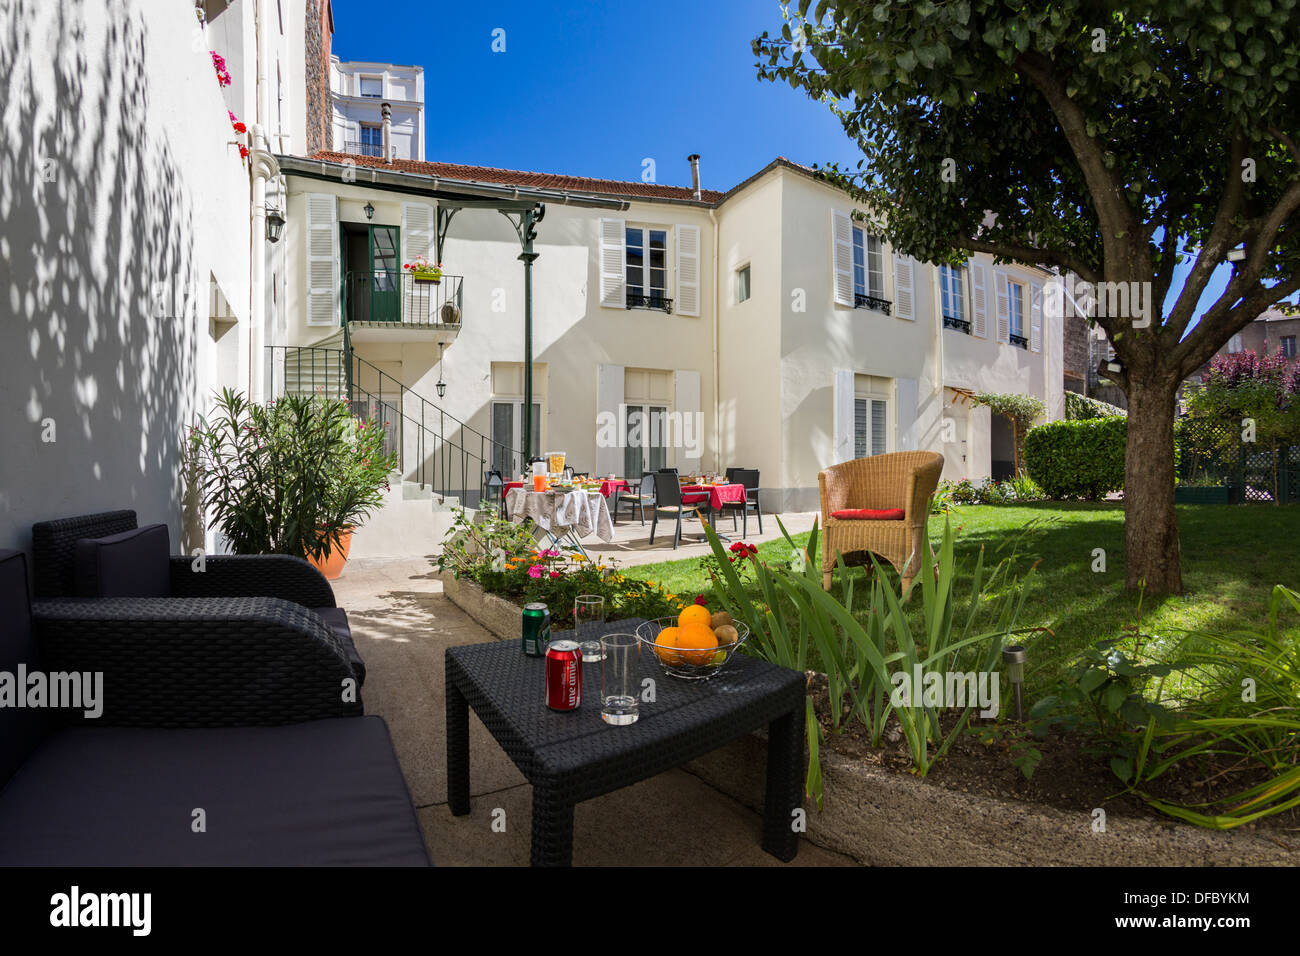 Hotel Courtyard (France). Backyard Back Yard Courtyard Garden Furniture  Lawn   Stock Image